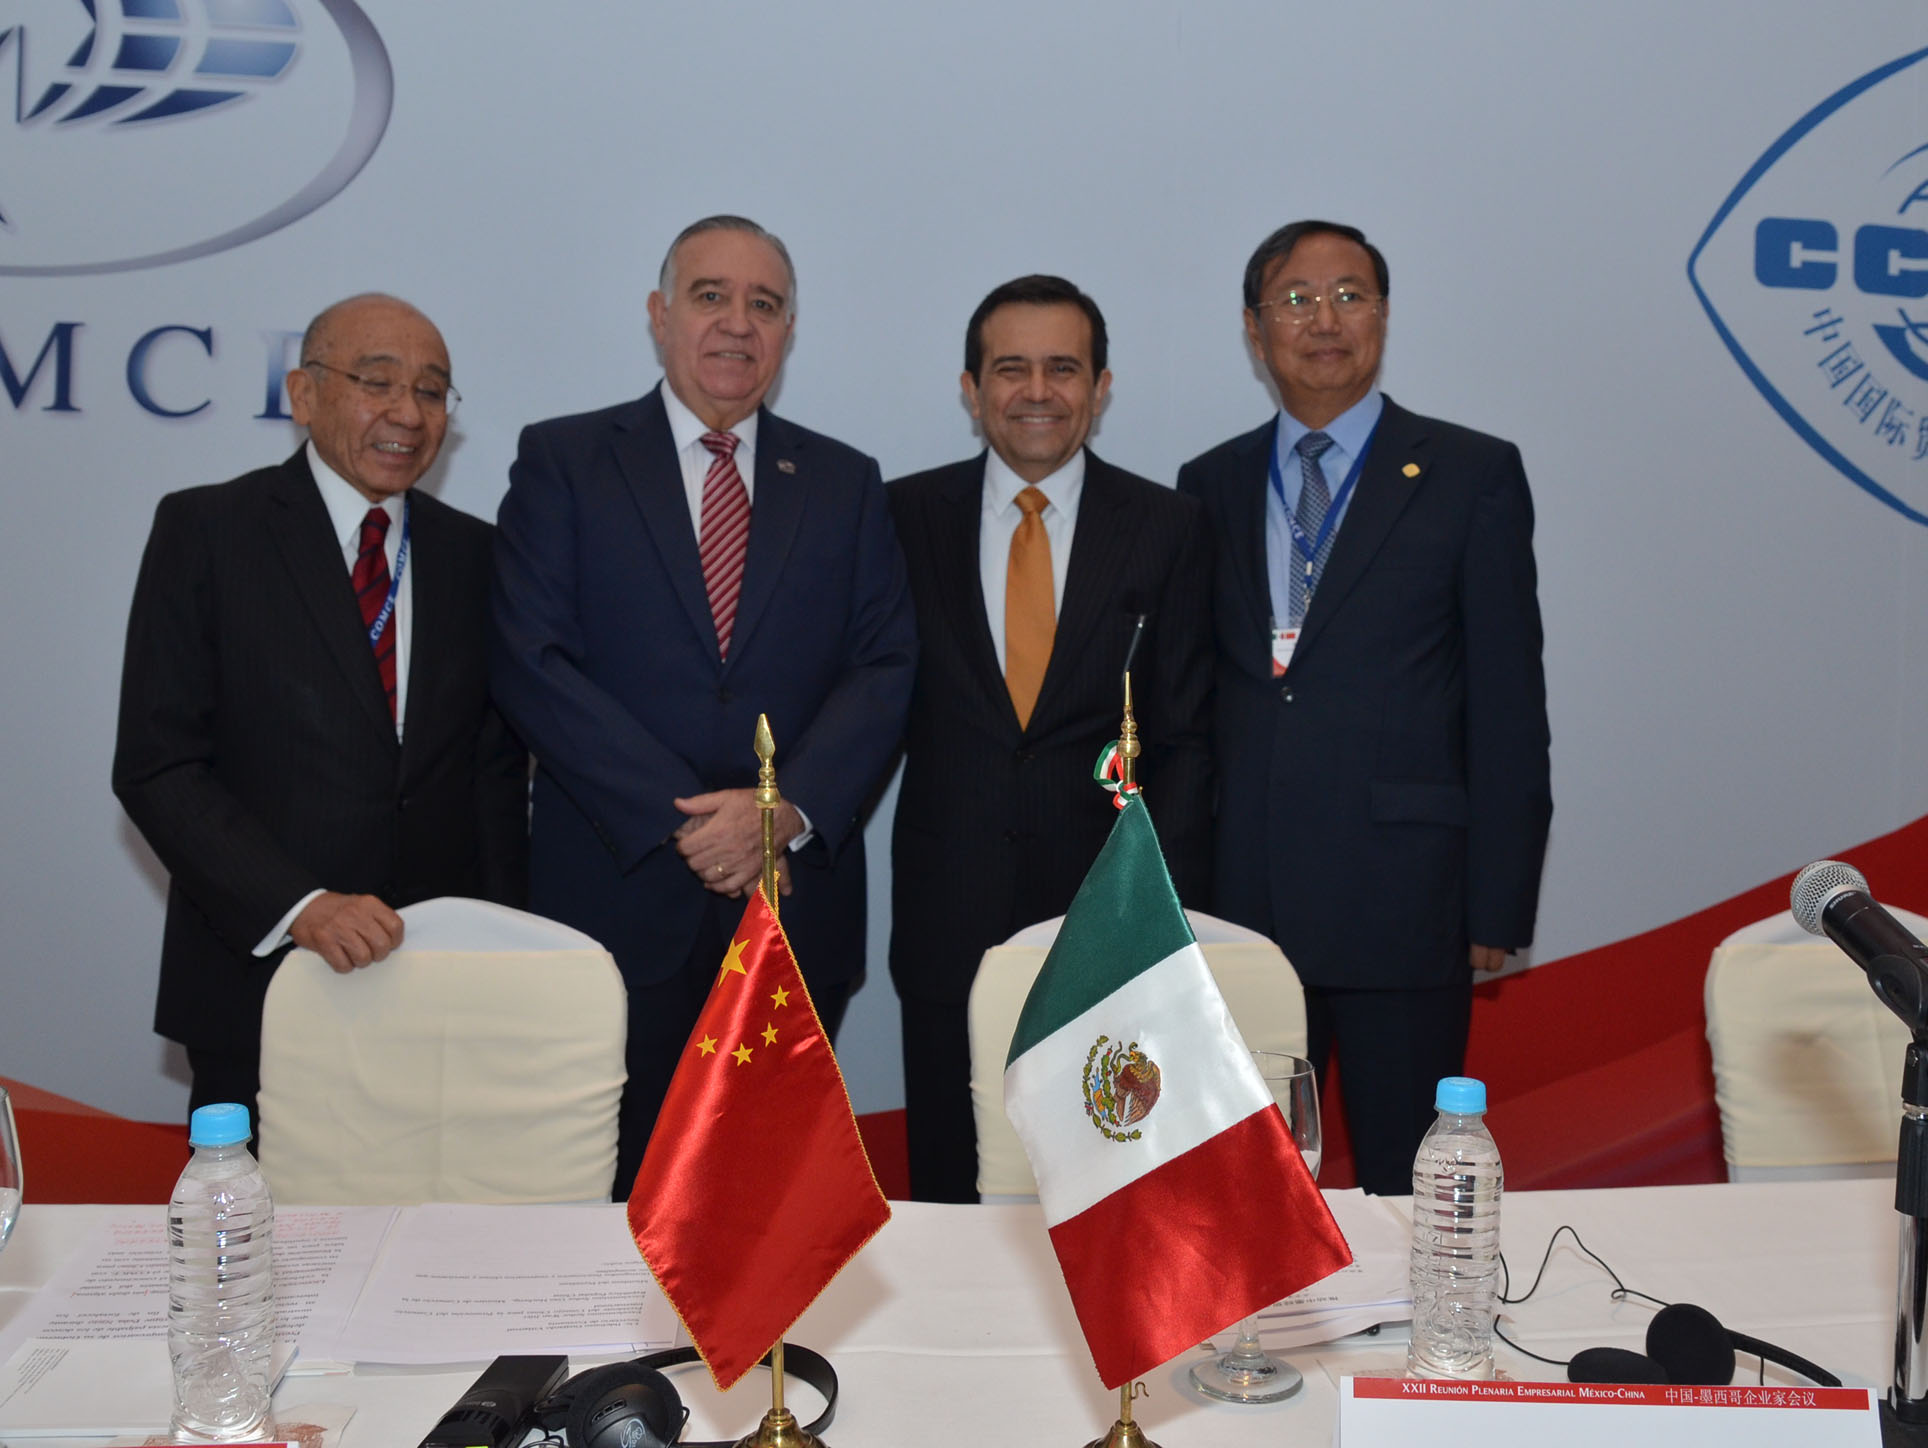 Xxii reunion plenaria empresarial mex. china 1